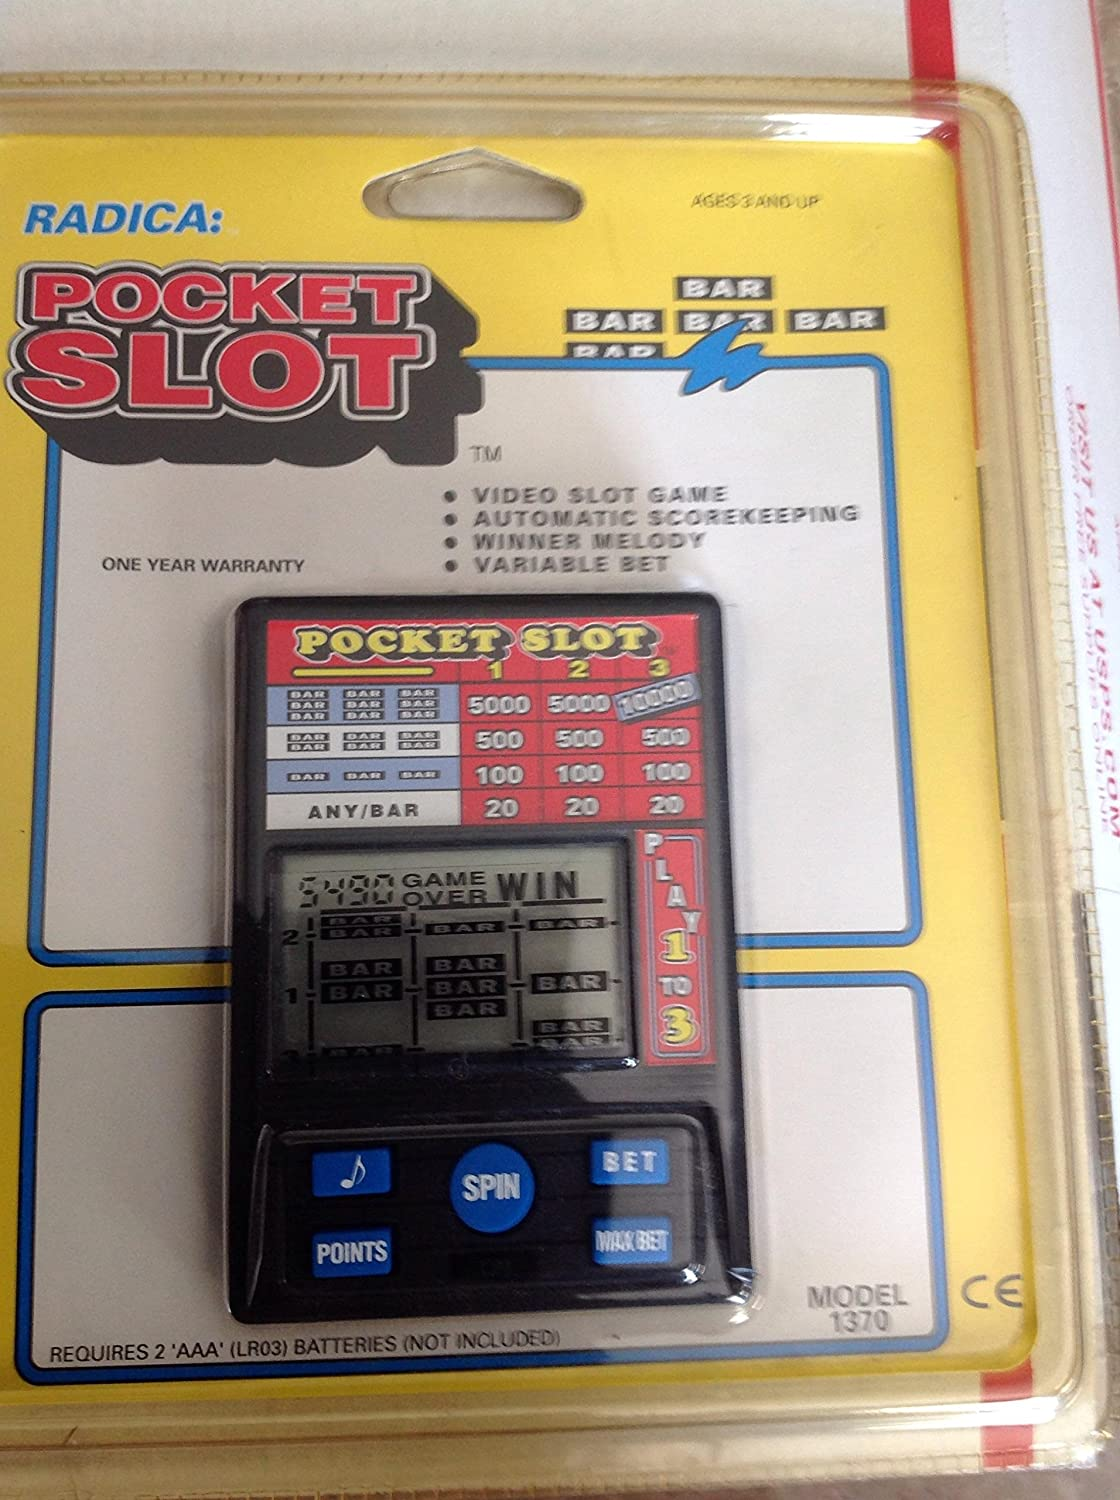 Radica Pocket Slot Video Slot Machine Electronic Handheld Game